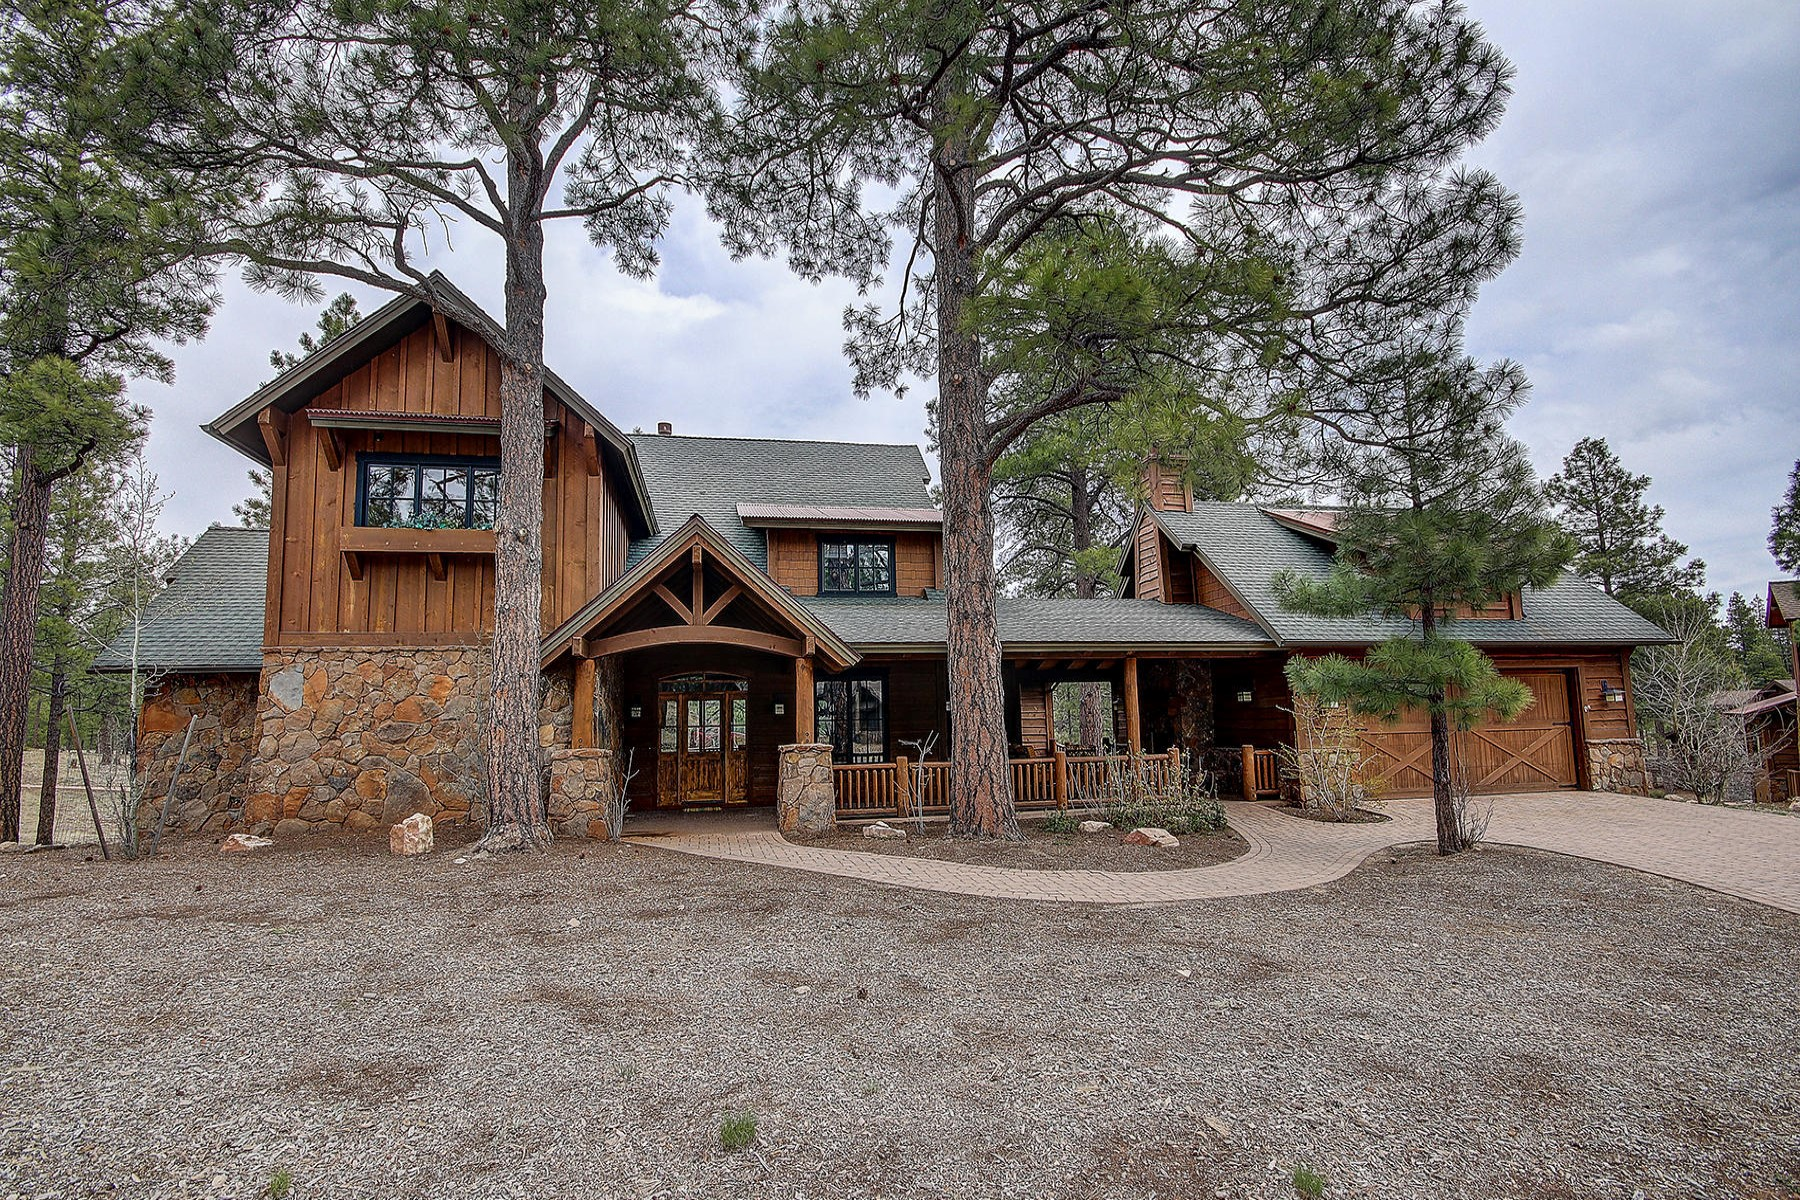 Single Family Home for Sale at Charming Flagstaff mountain retreat 2114 E Del Rae Dr Flagstaff, Arizona, 86005 United States